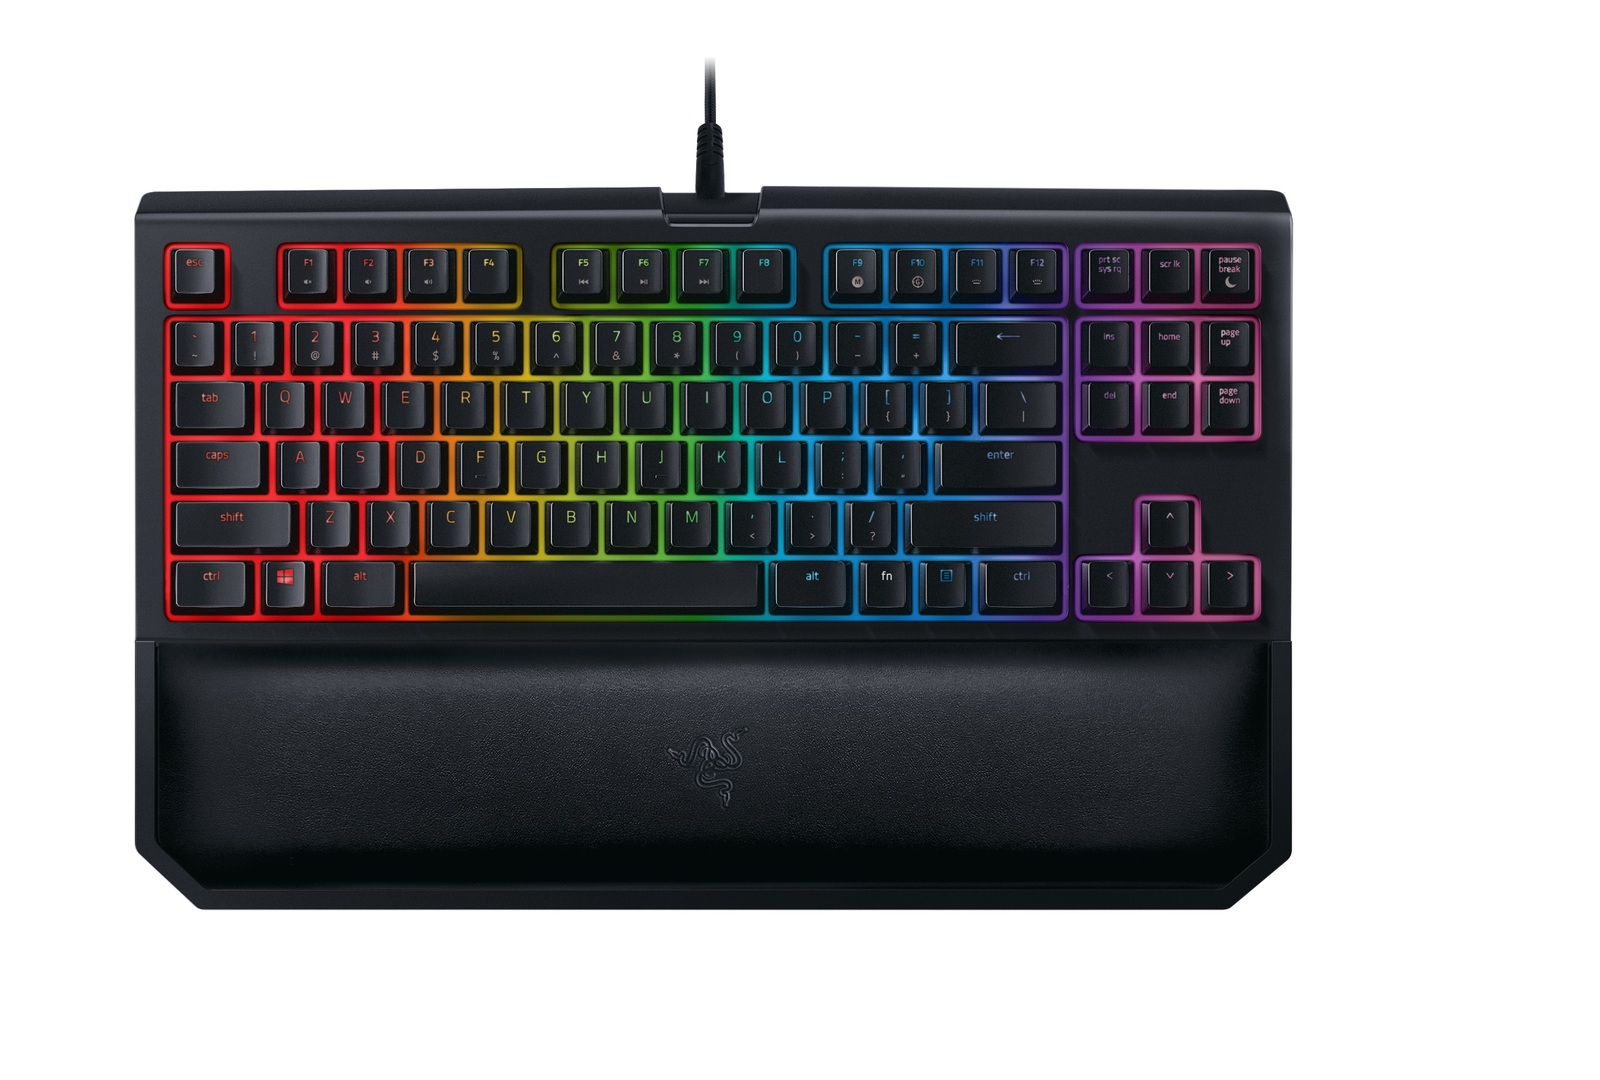 Razer BlackWidow Tournament Edition Chroma Gaming Keyboard V2 - Green Switches for PC Games image